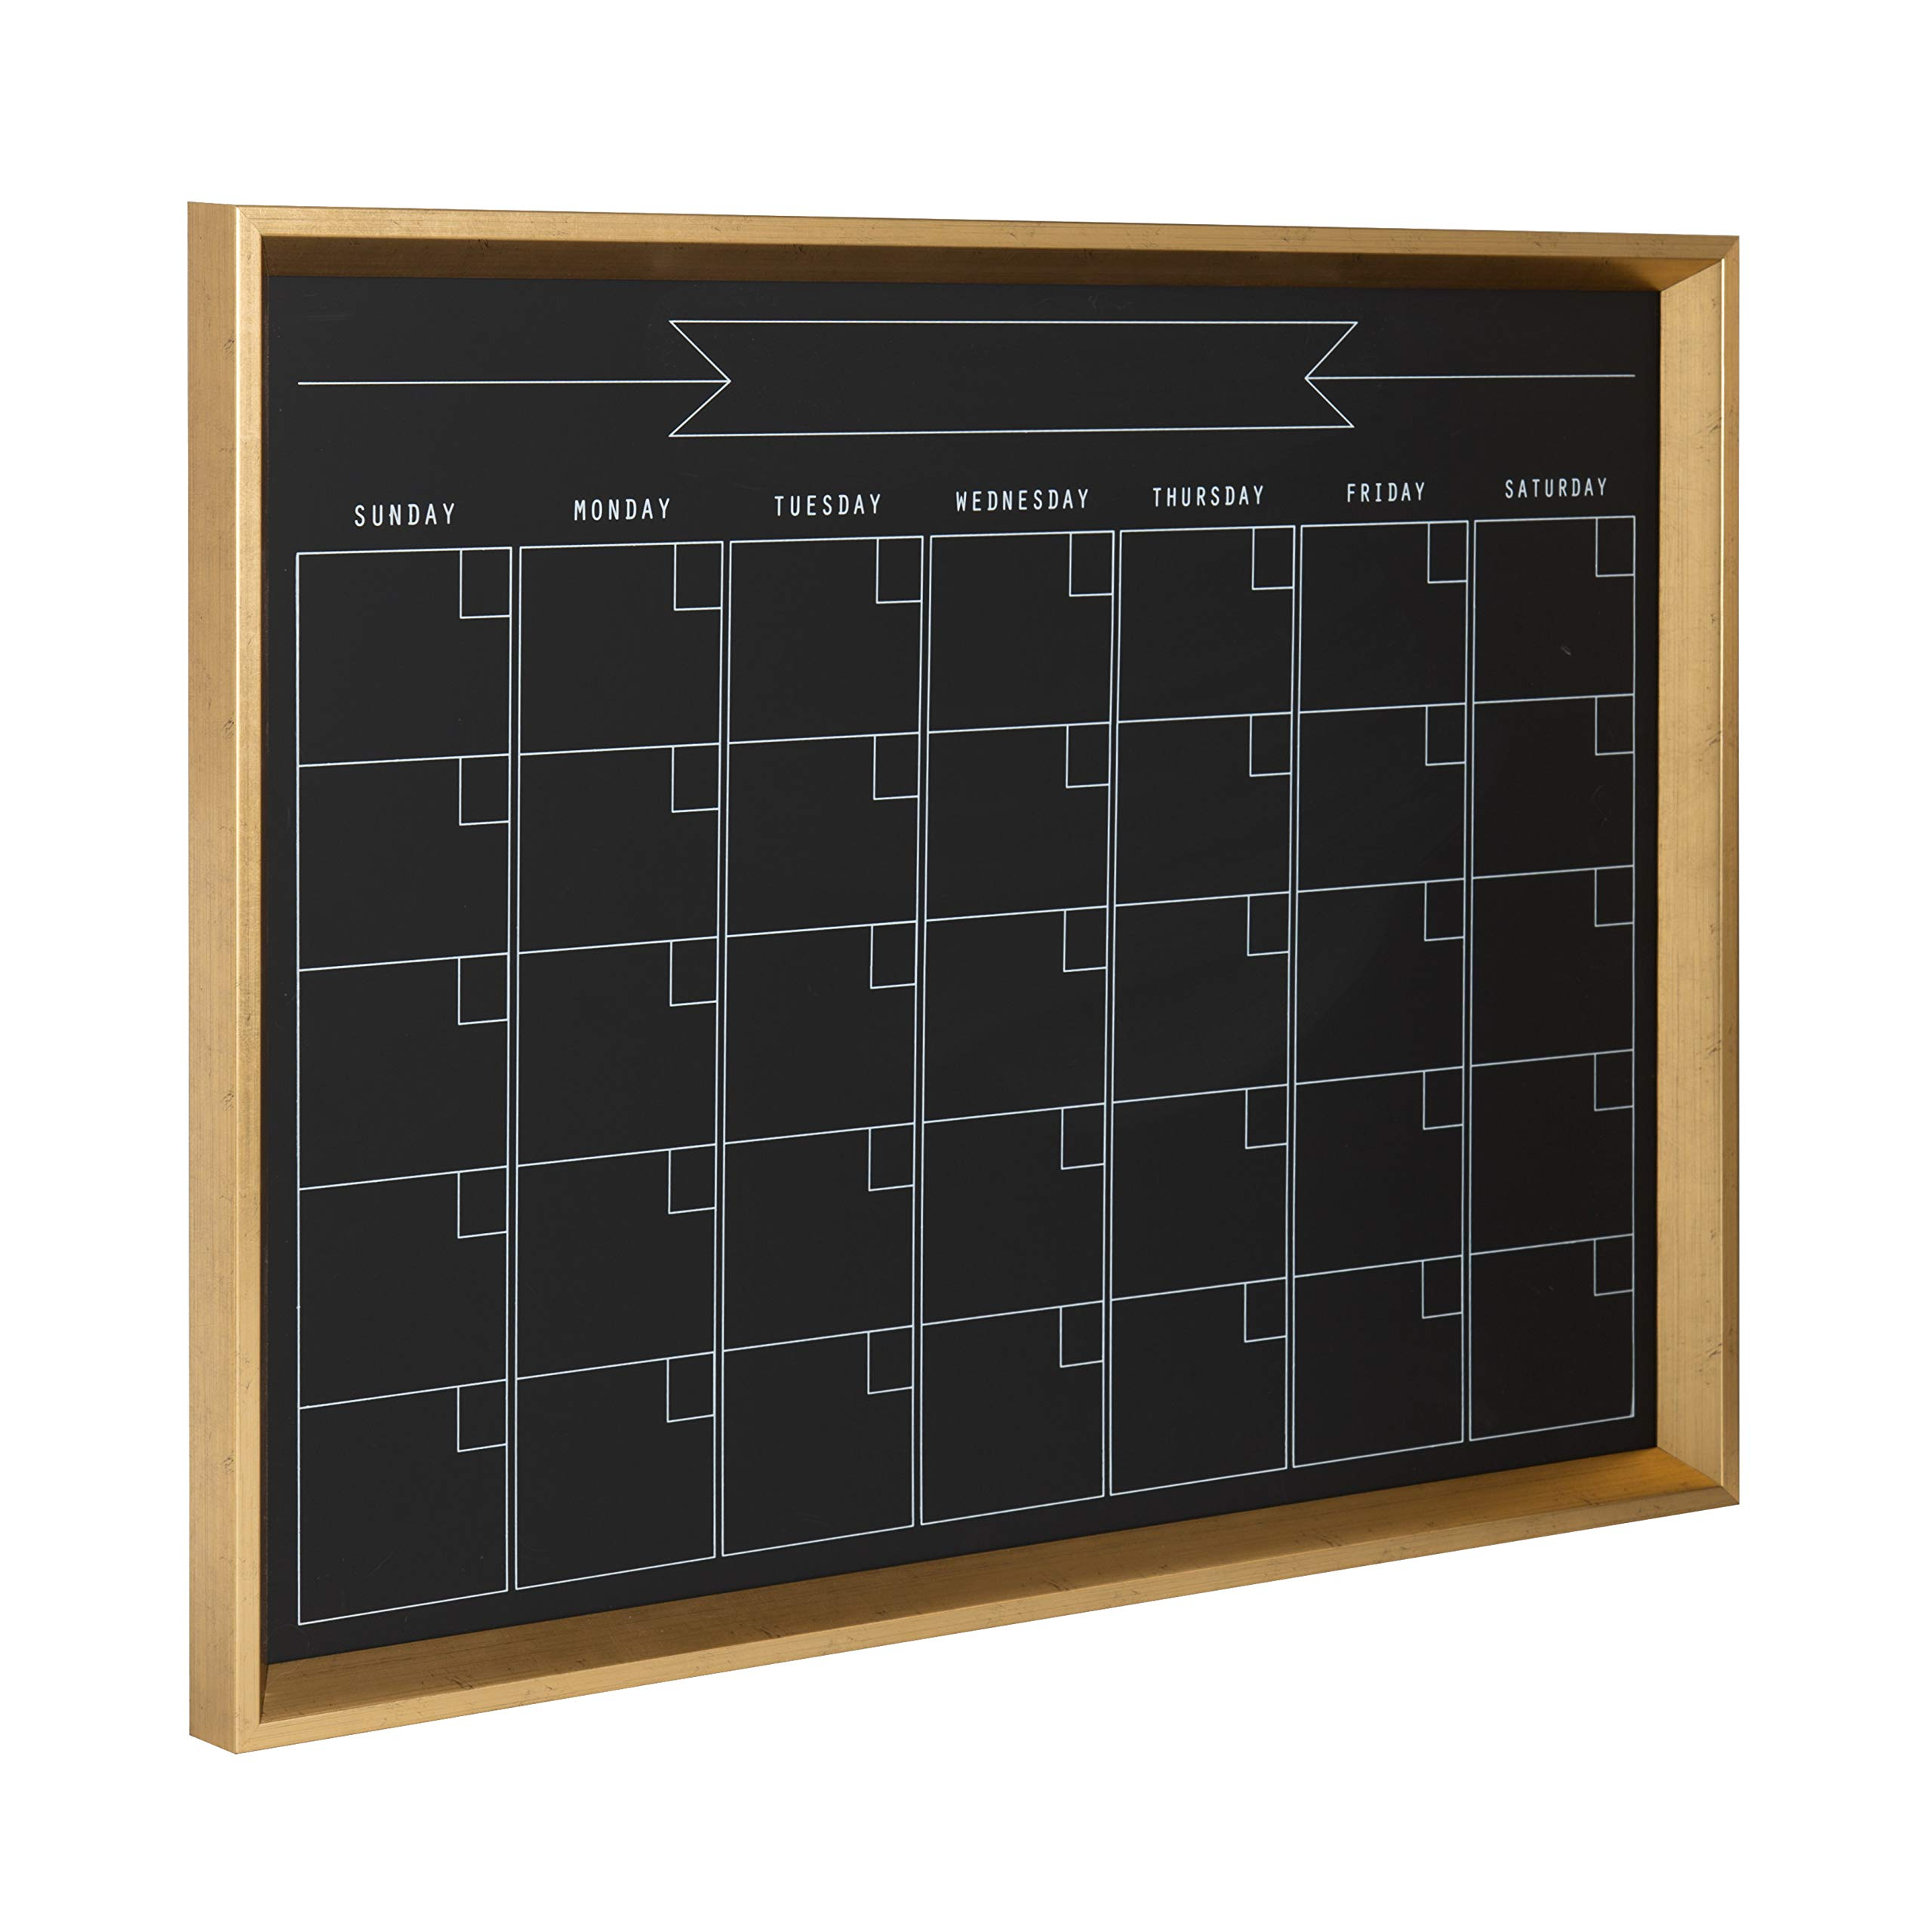 Kate and Laurel Calder Framed Magnetic Chalkboard Monthly Calendar 21.5'' x 27.5'' Gold by Kate and Laurel